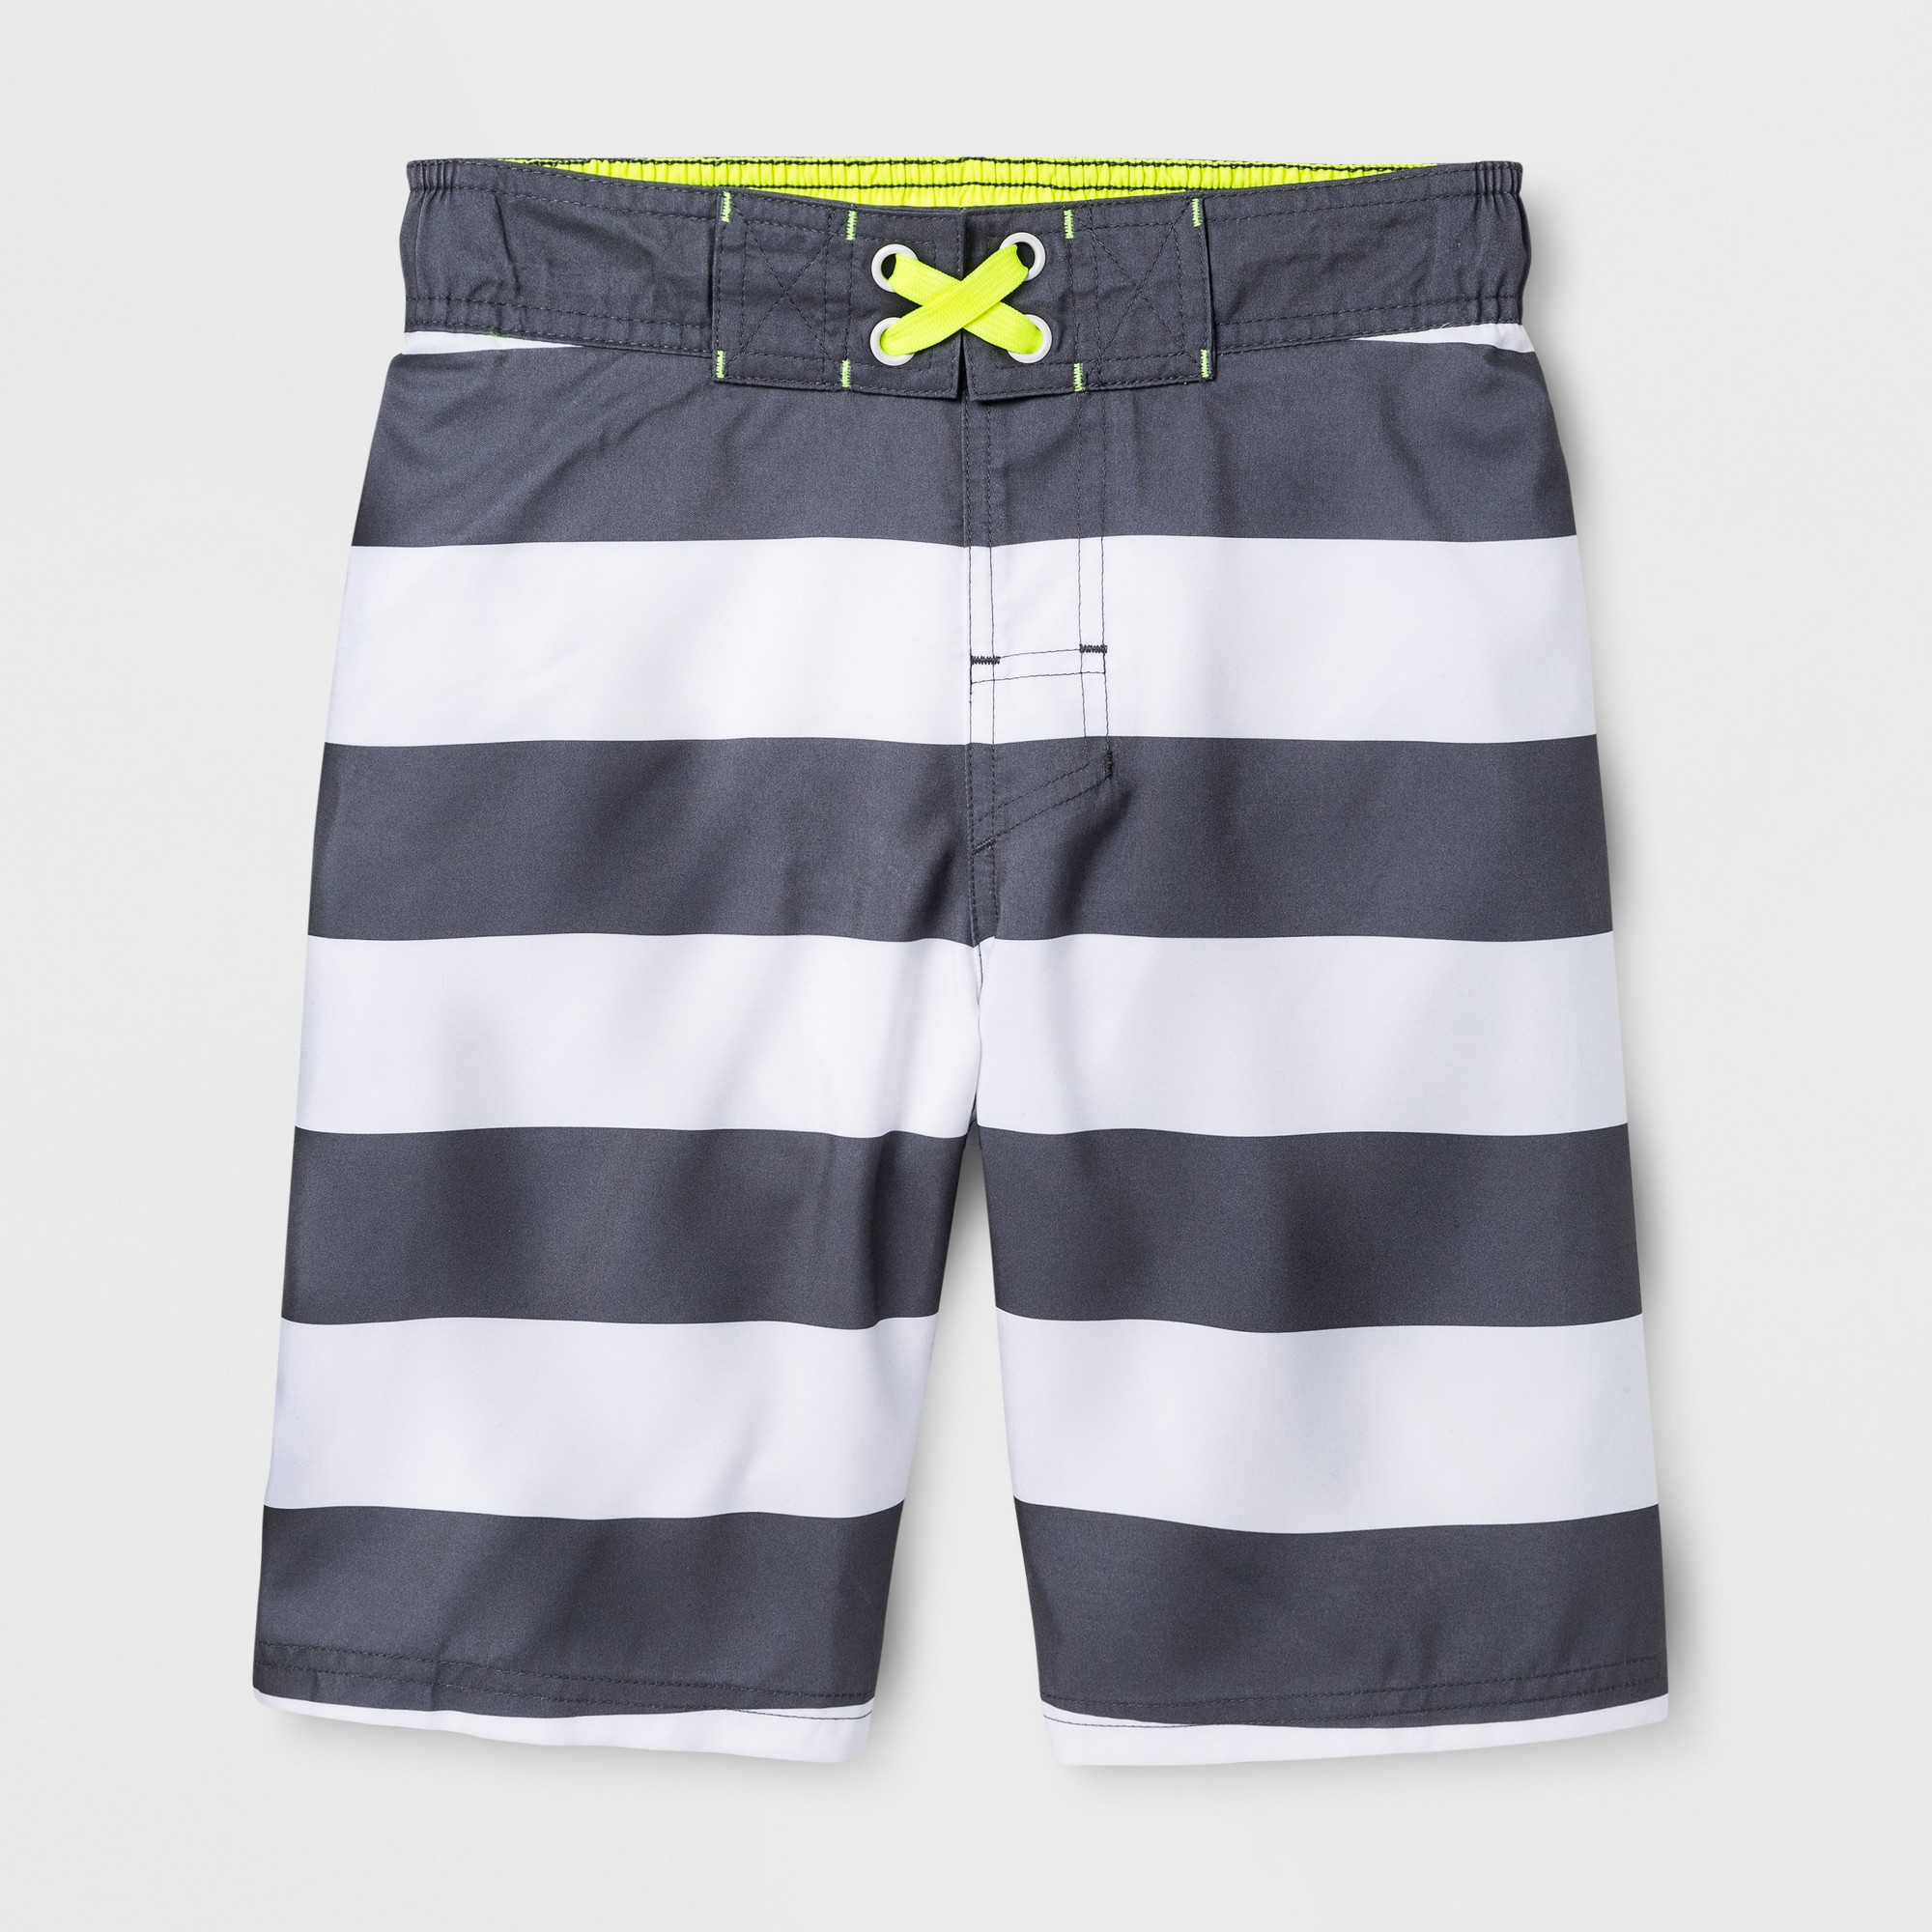 969305b0c6 Boys' Rugby Swim Trunk - Cat & Jack™ Gray XS | Products | Swim ...